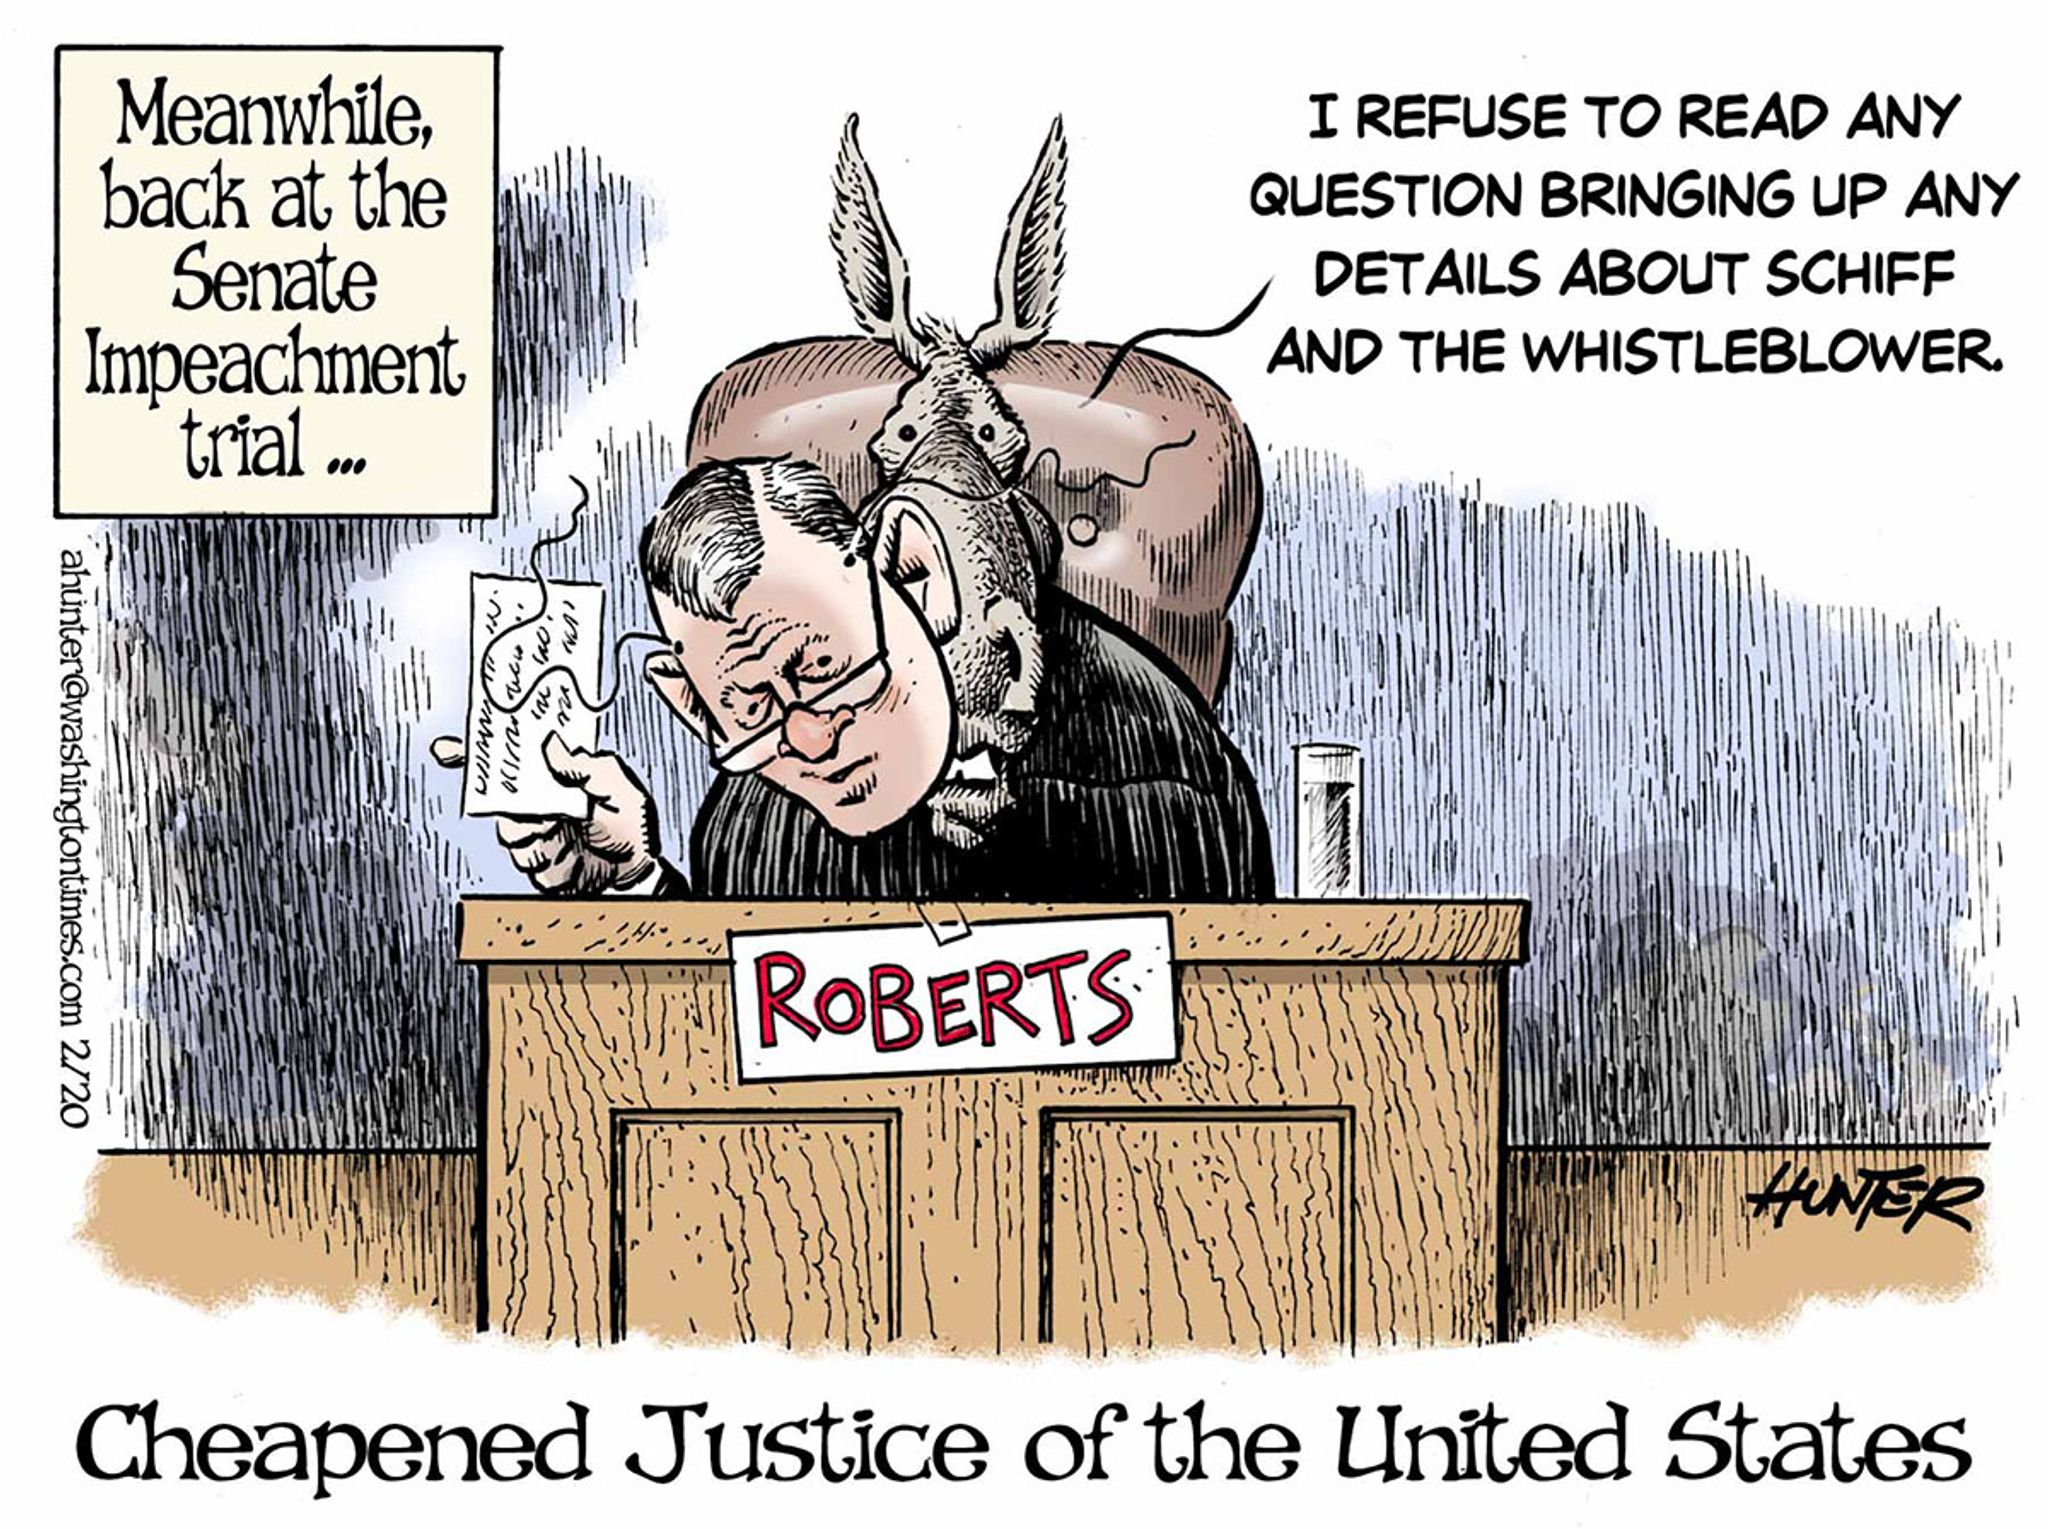 Political Cartoons - Congress in action - Cheapened Justice of the United States - Washington Times